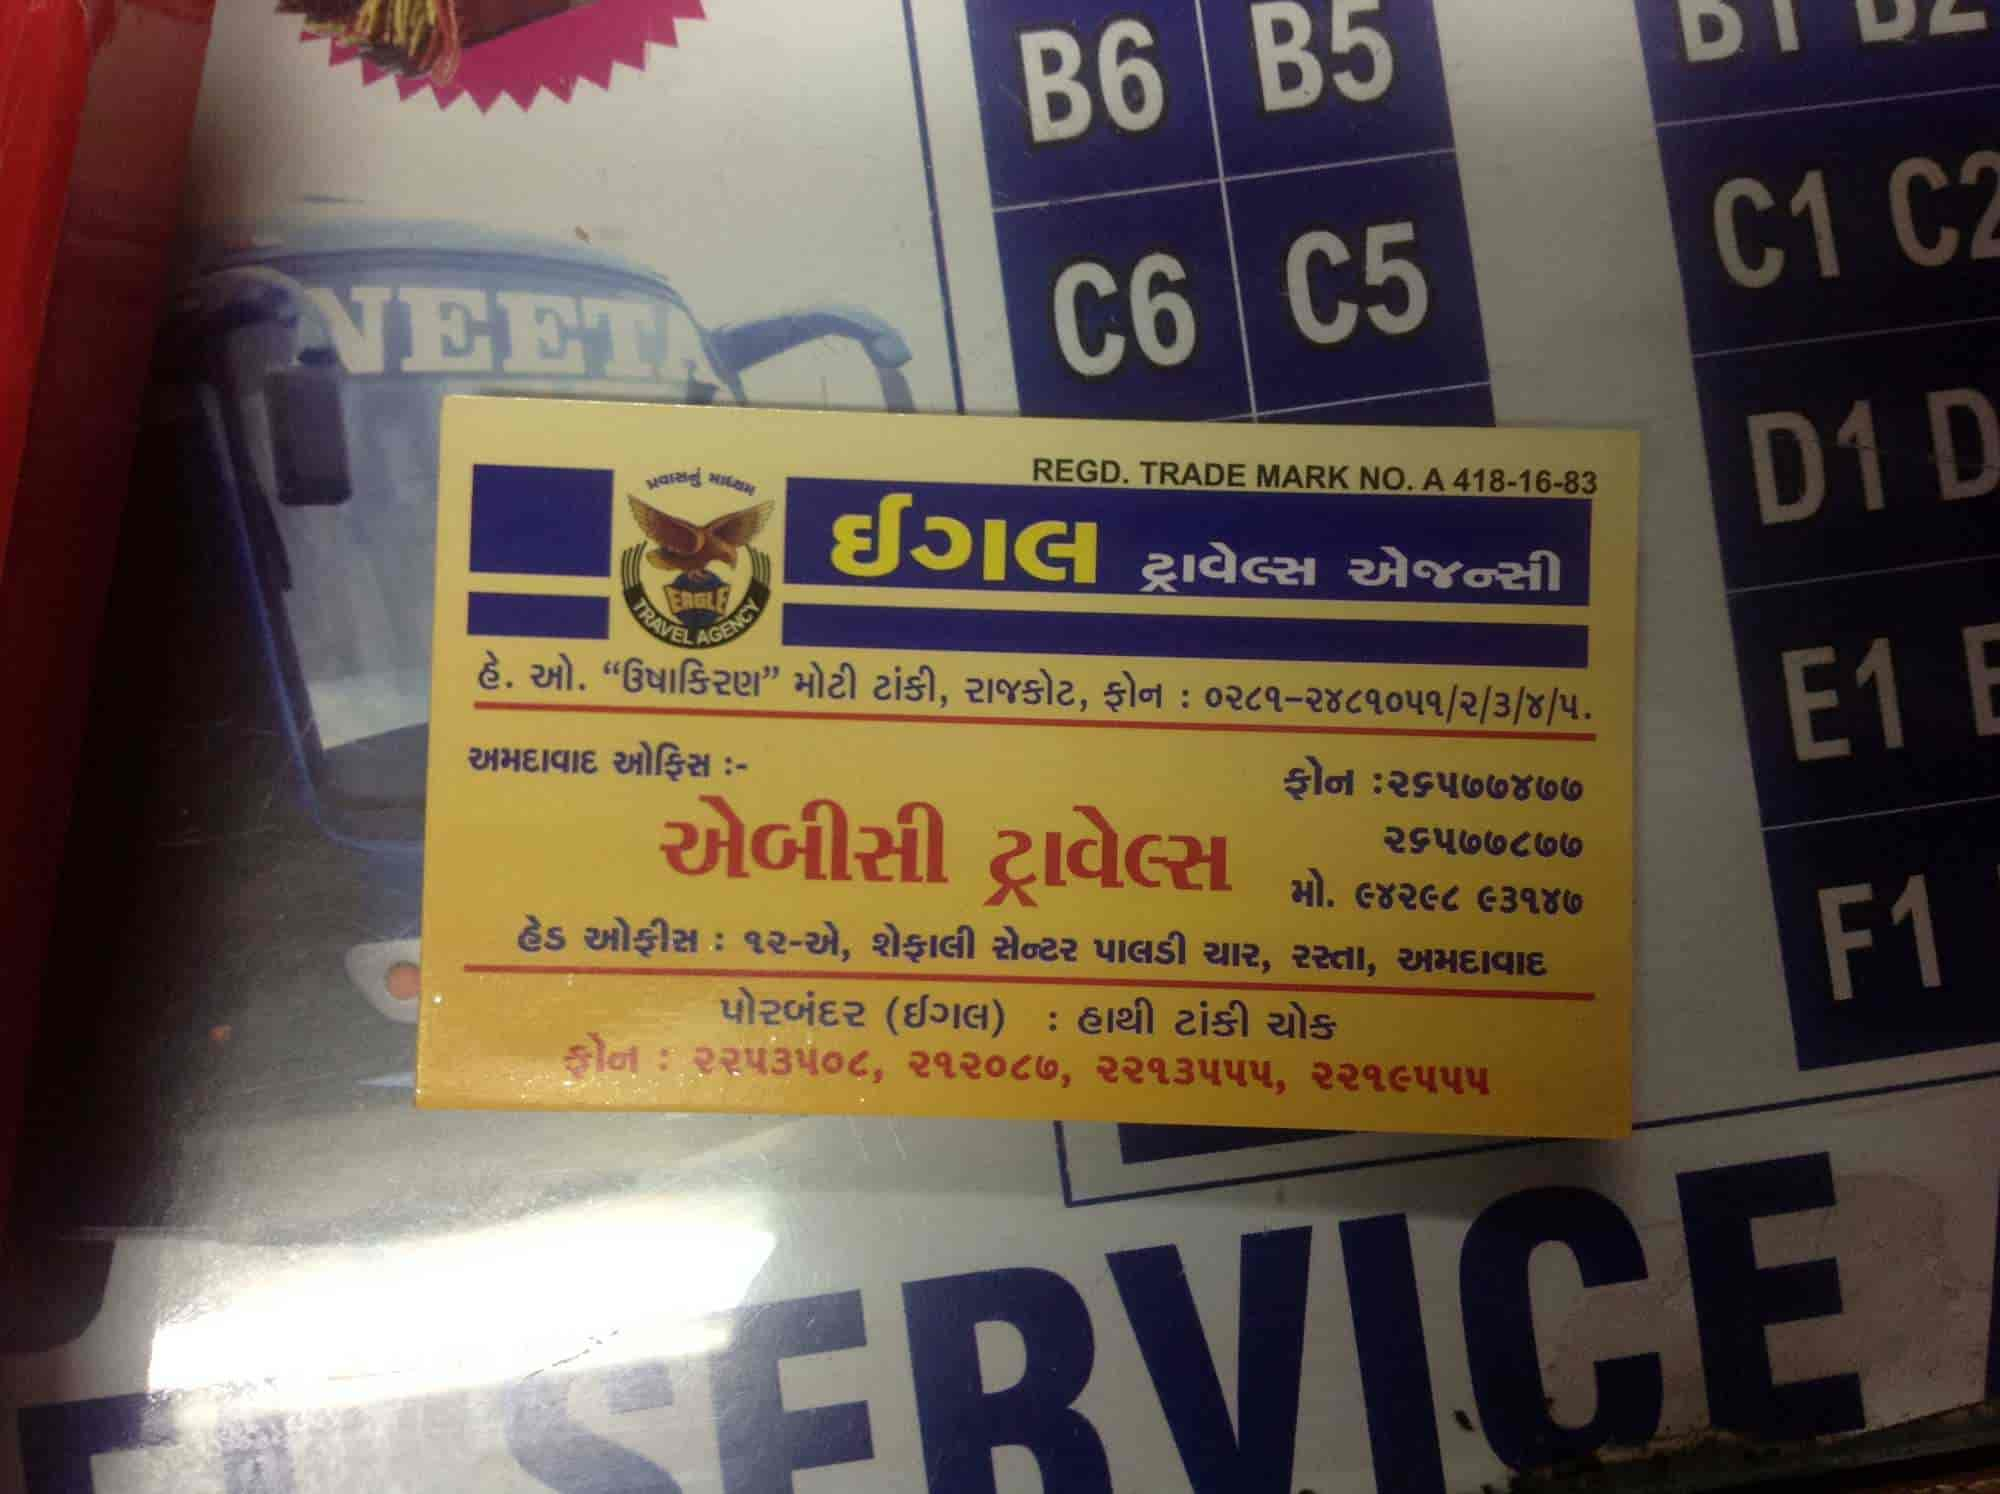 Abc Eagle Travels Agency Photos Paldi Ahmedabad Pictures Images